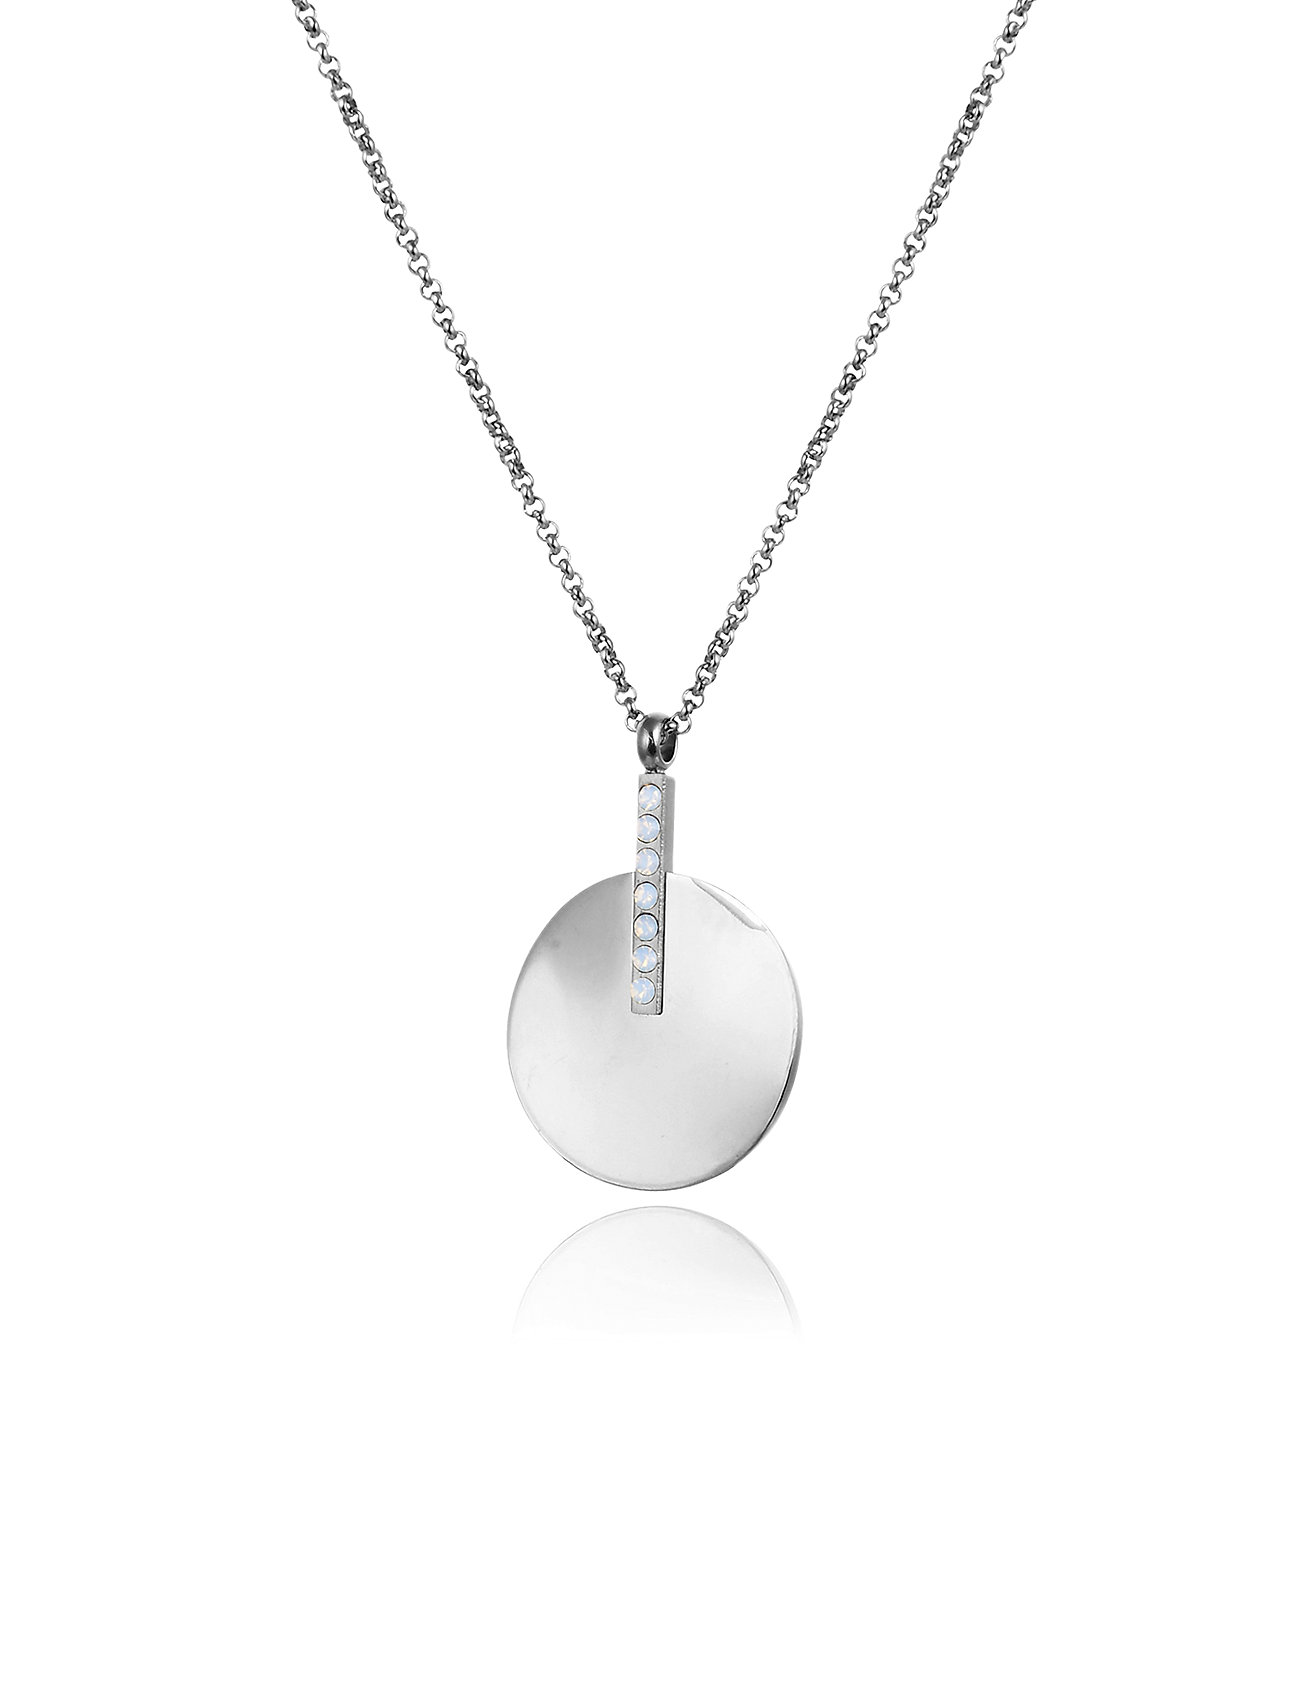 Bud to rose Kelly Short Necklace - SILVER